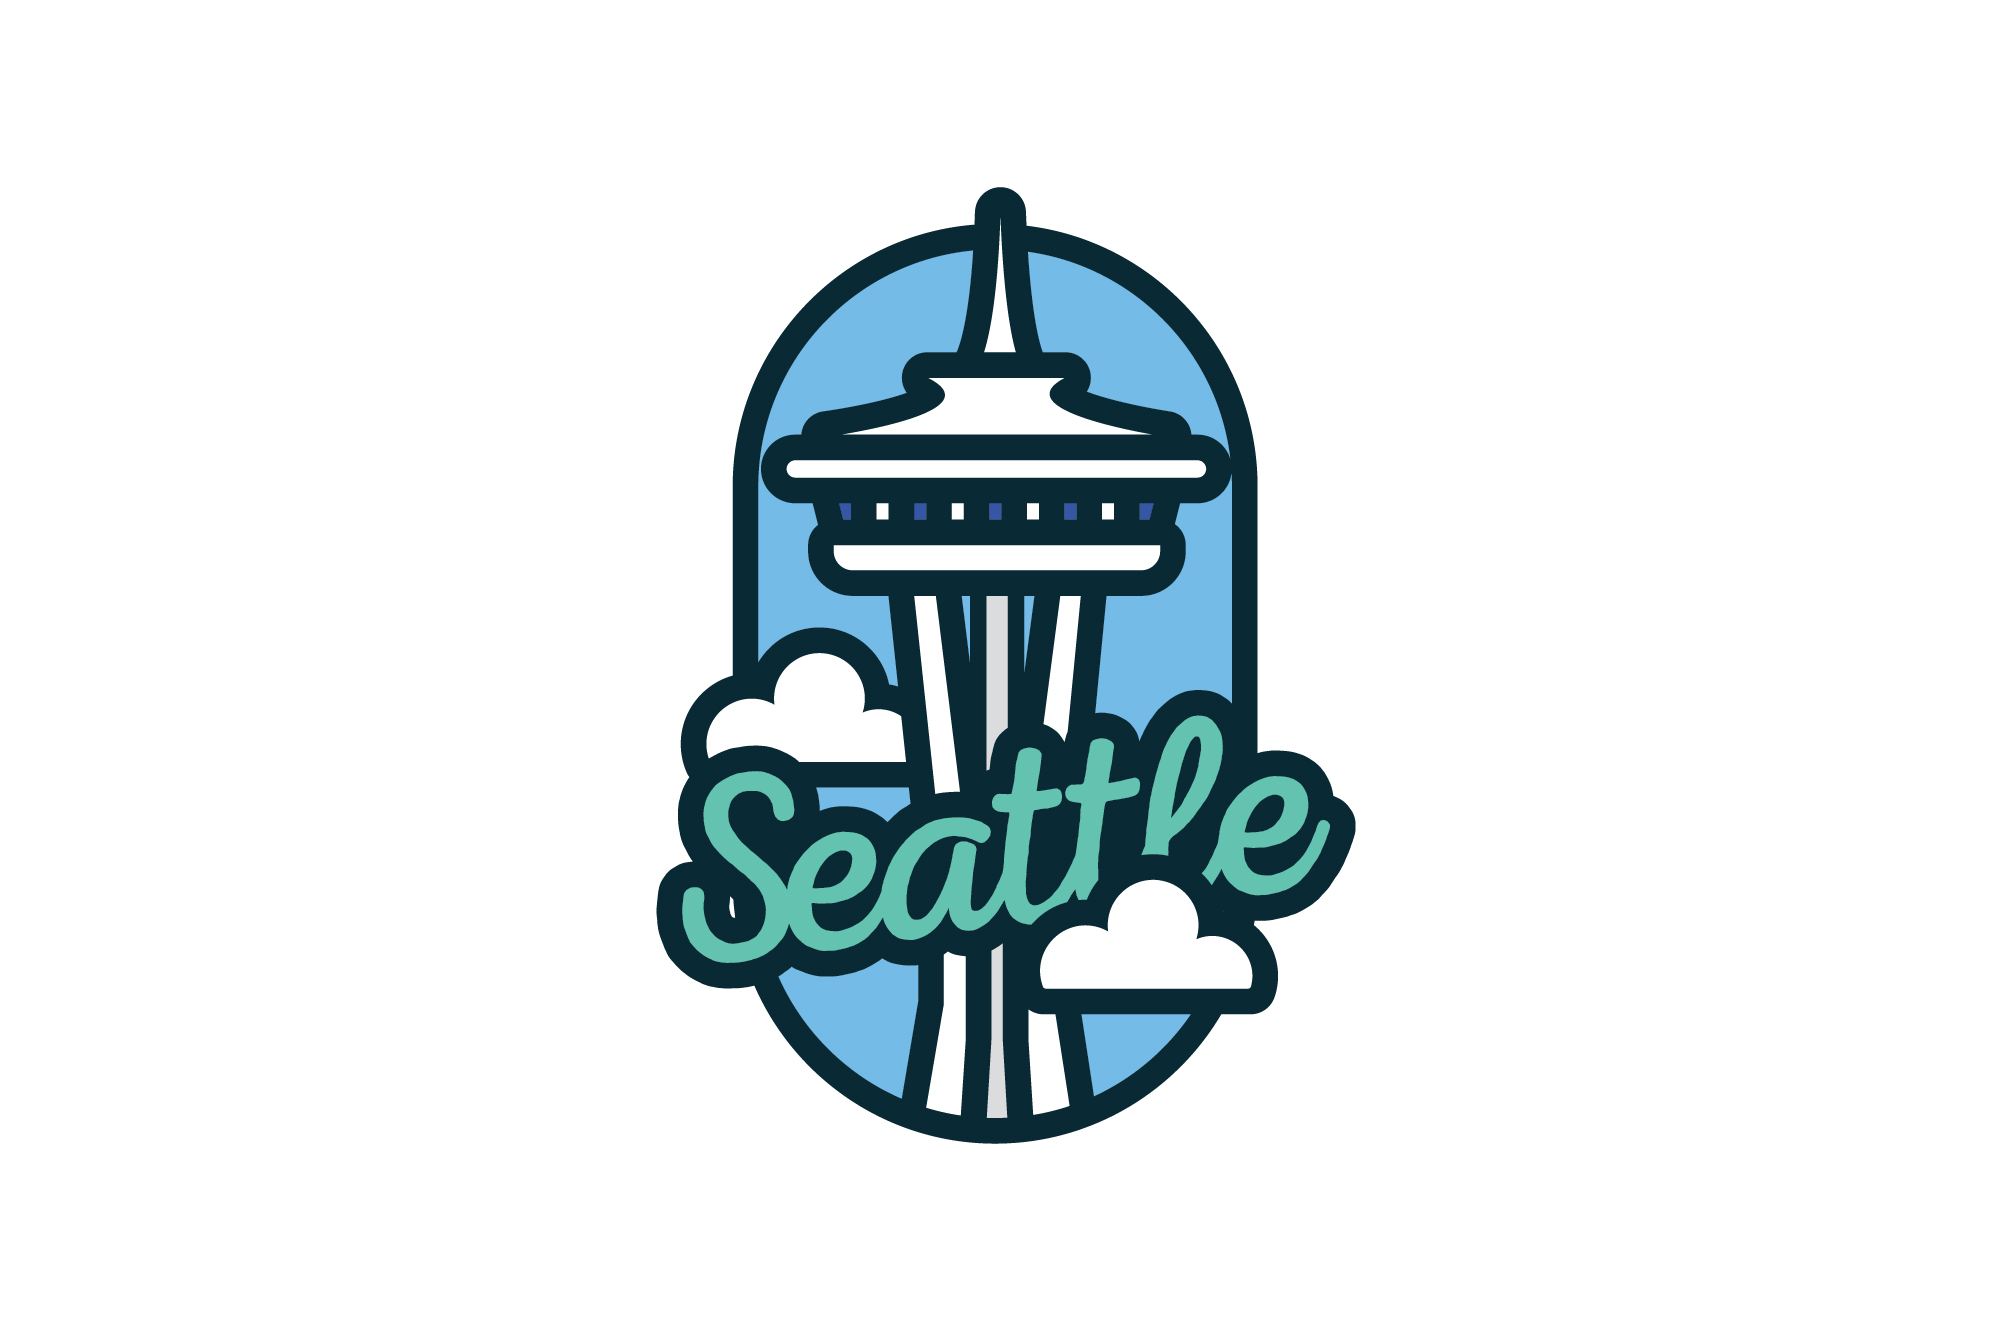 Seattle Travel Patch Illustration